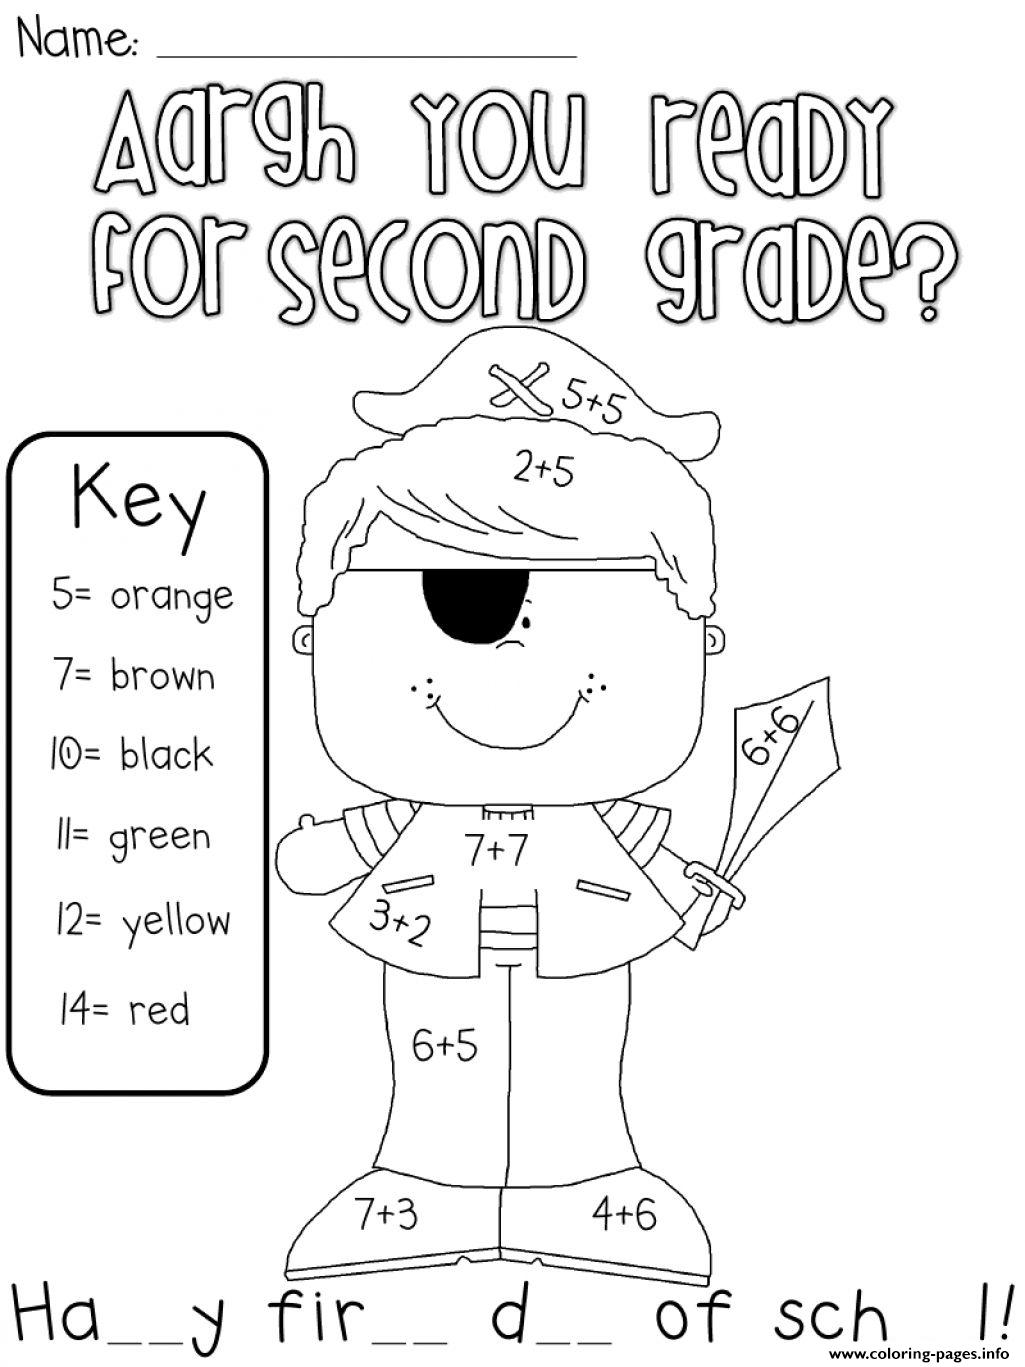 Are You Ready For Second Grade coloring pages